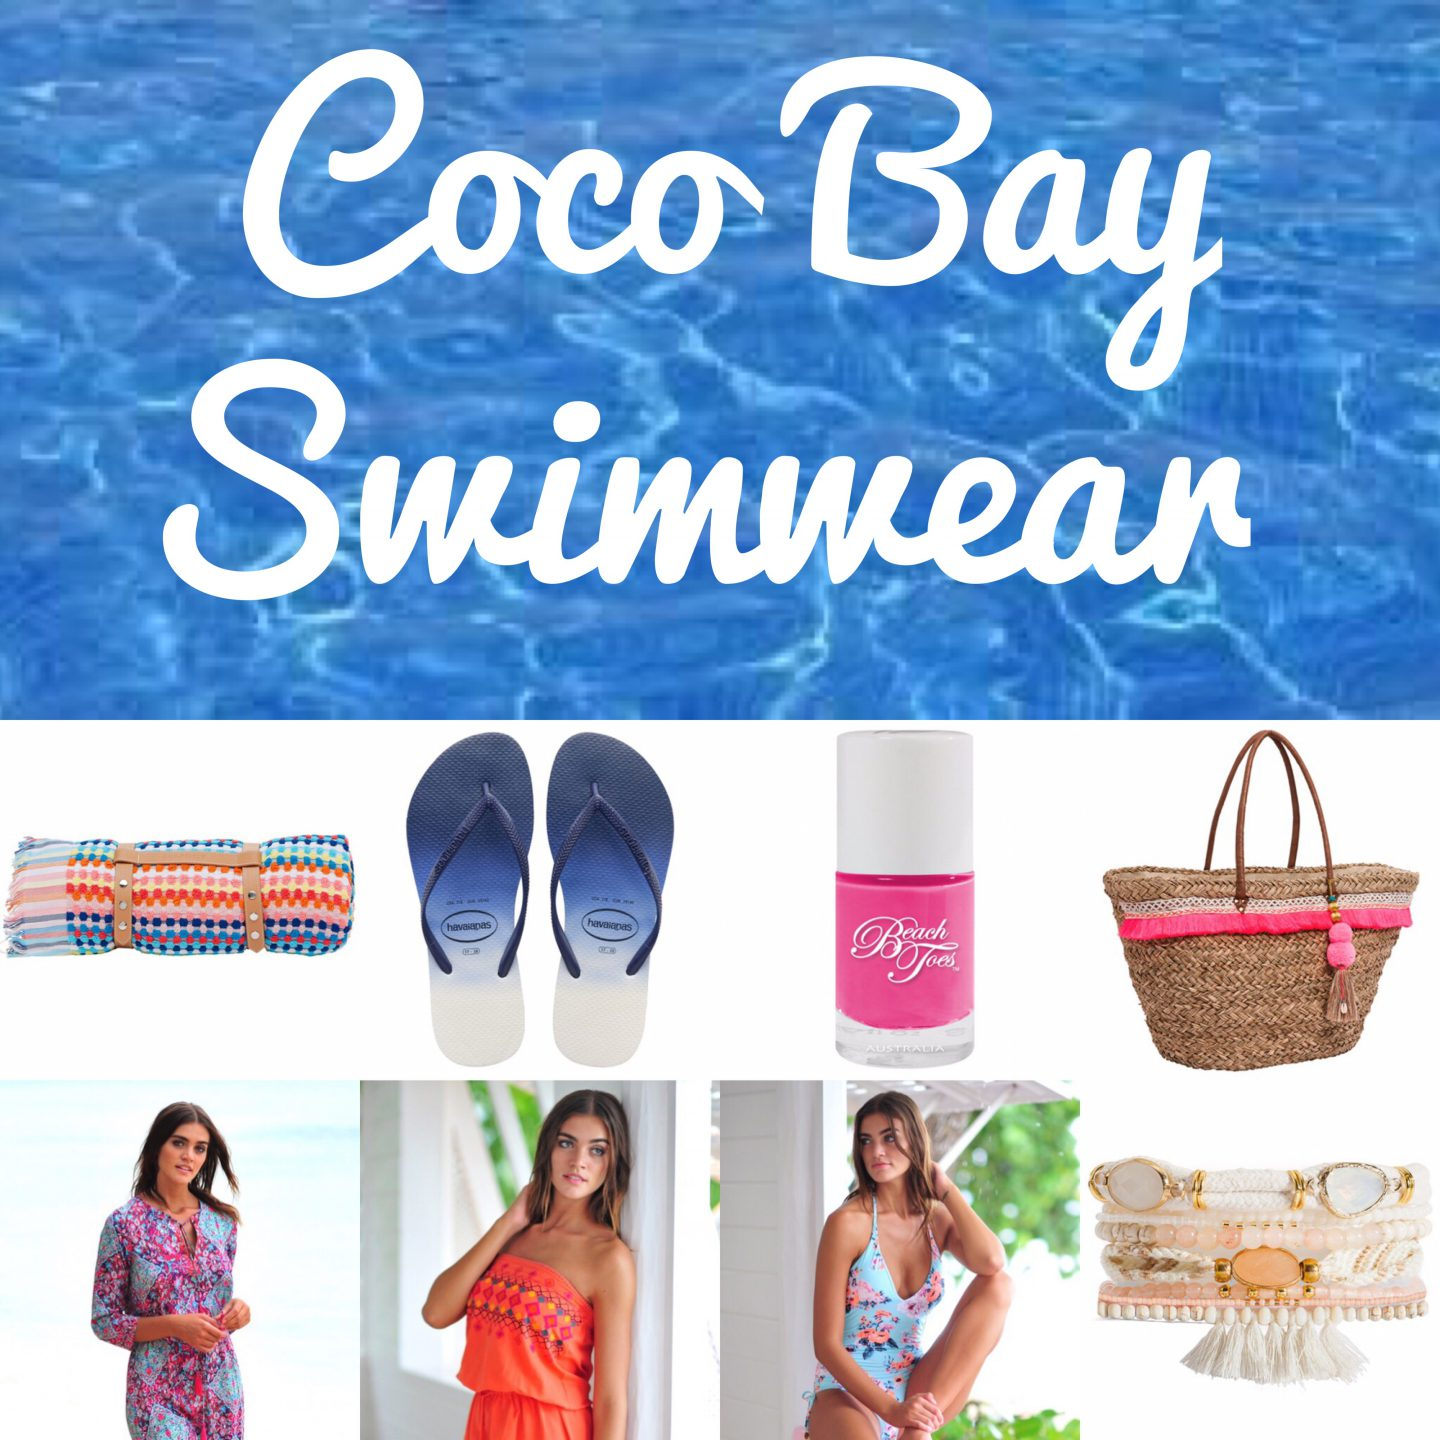 Coco Bay Swimwear Wishlist.